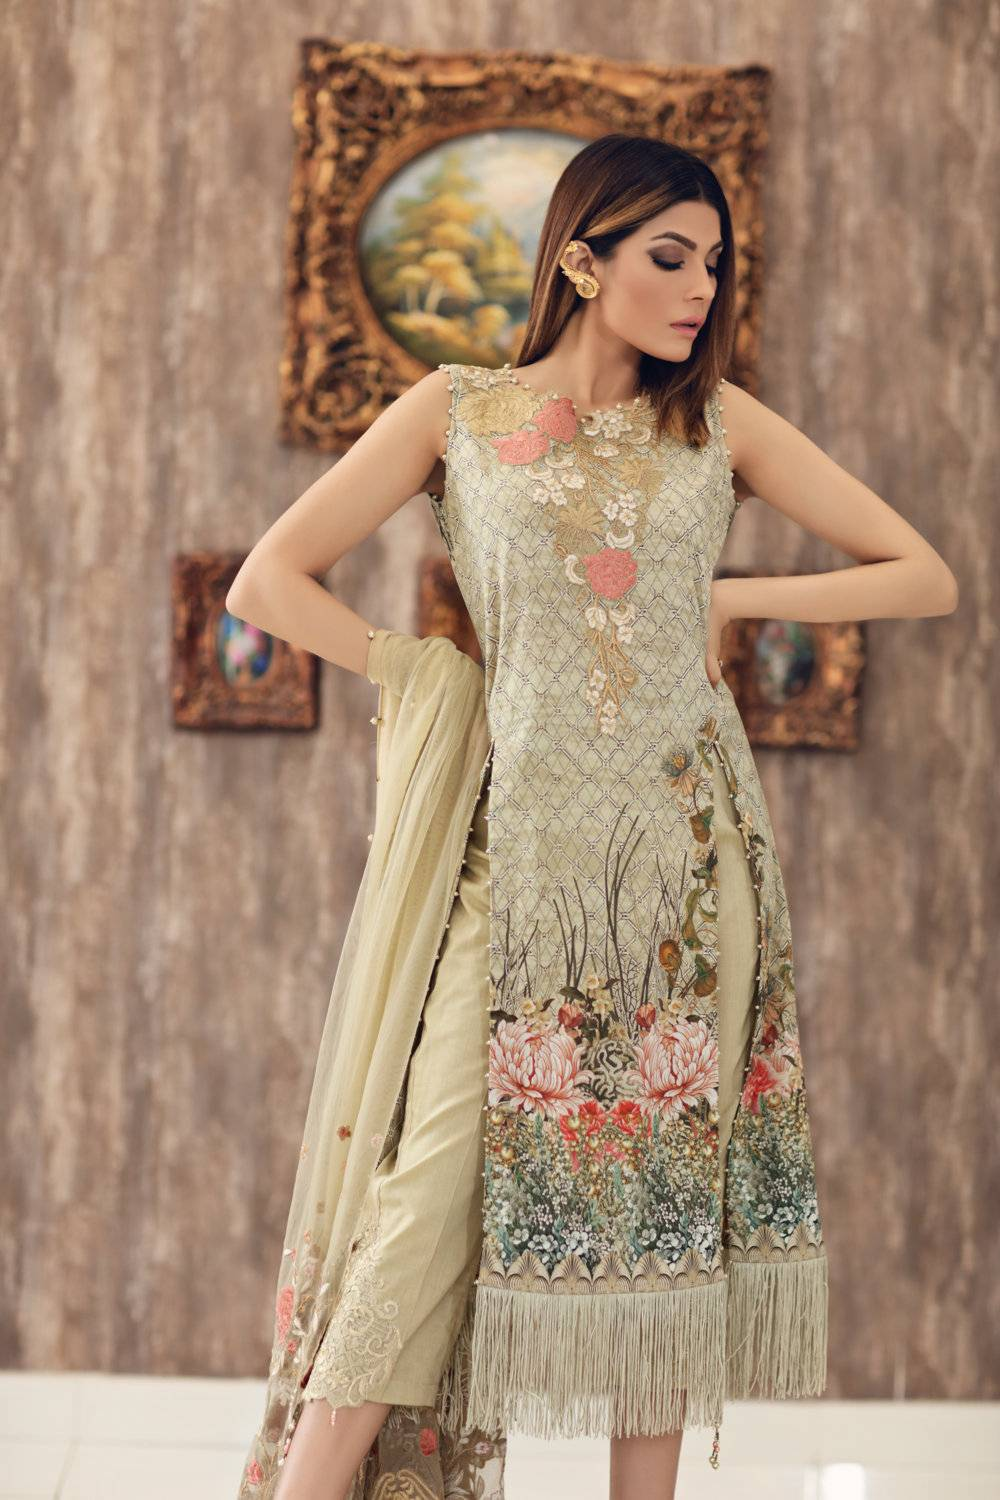 Noor by Saadia Asad Embroidered Cotton Unstitched 3 Piece Suit SA17E2 05